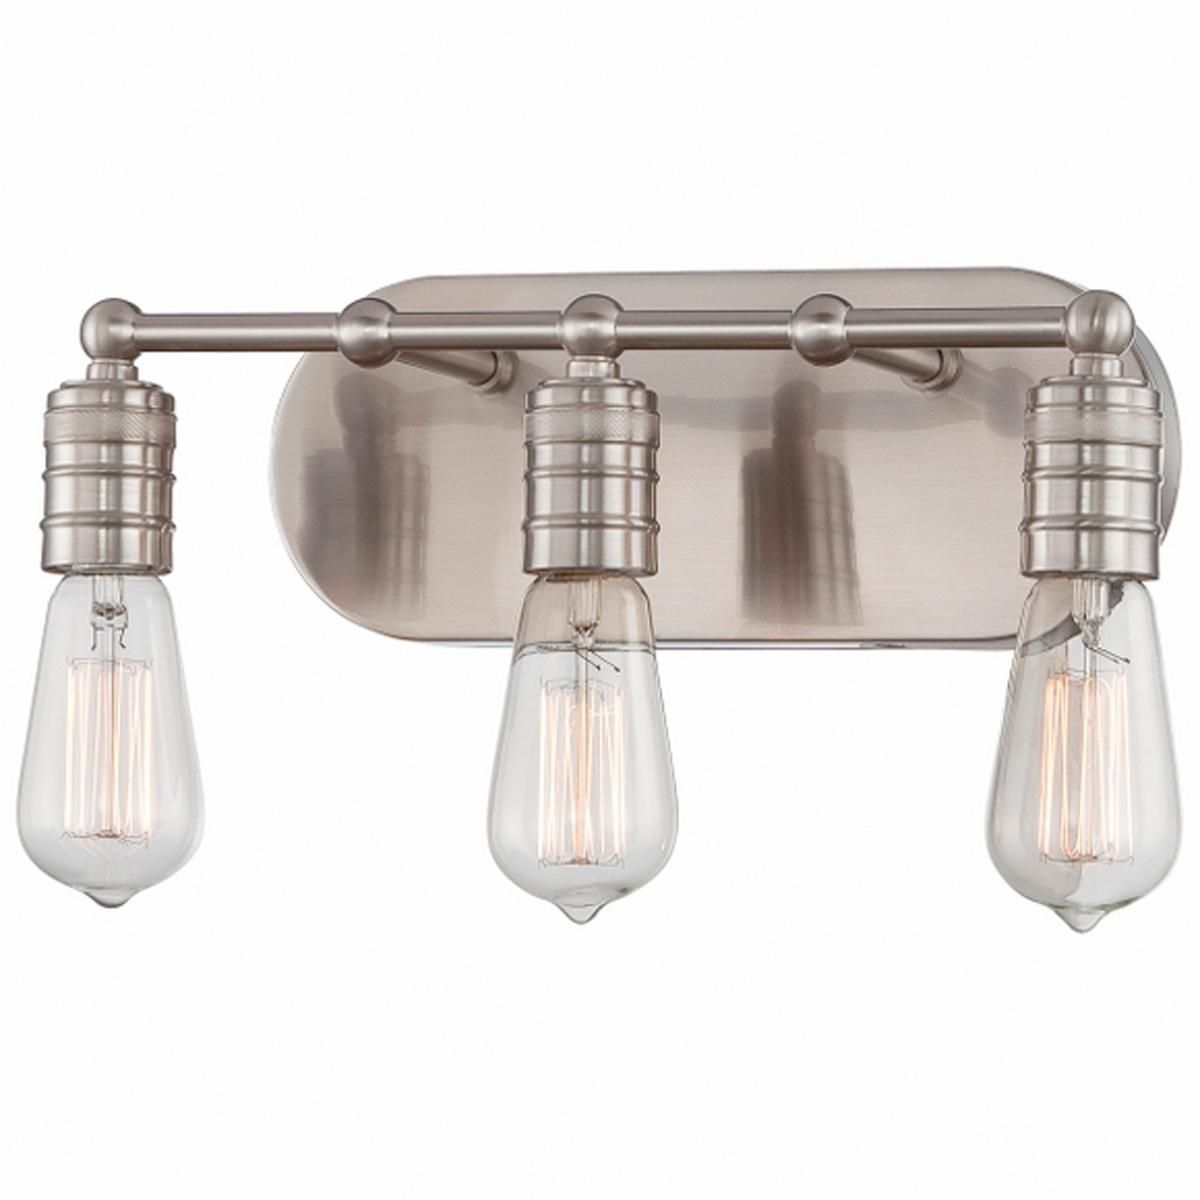 minimalist edison vanity light - 3 light | vanity lighting